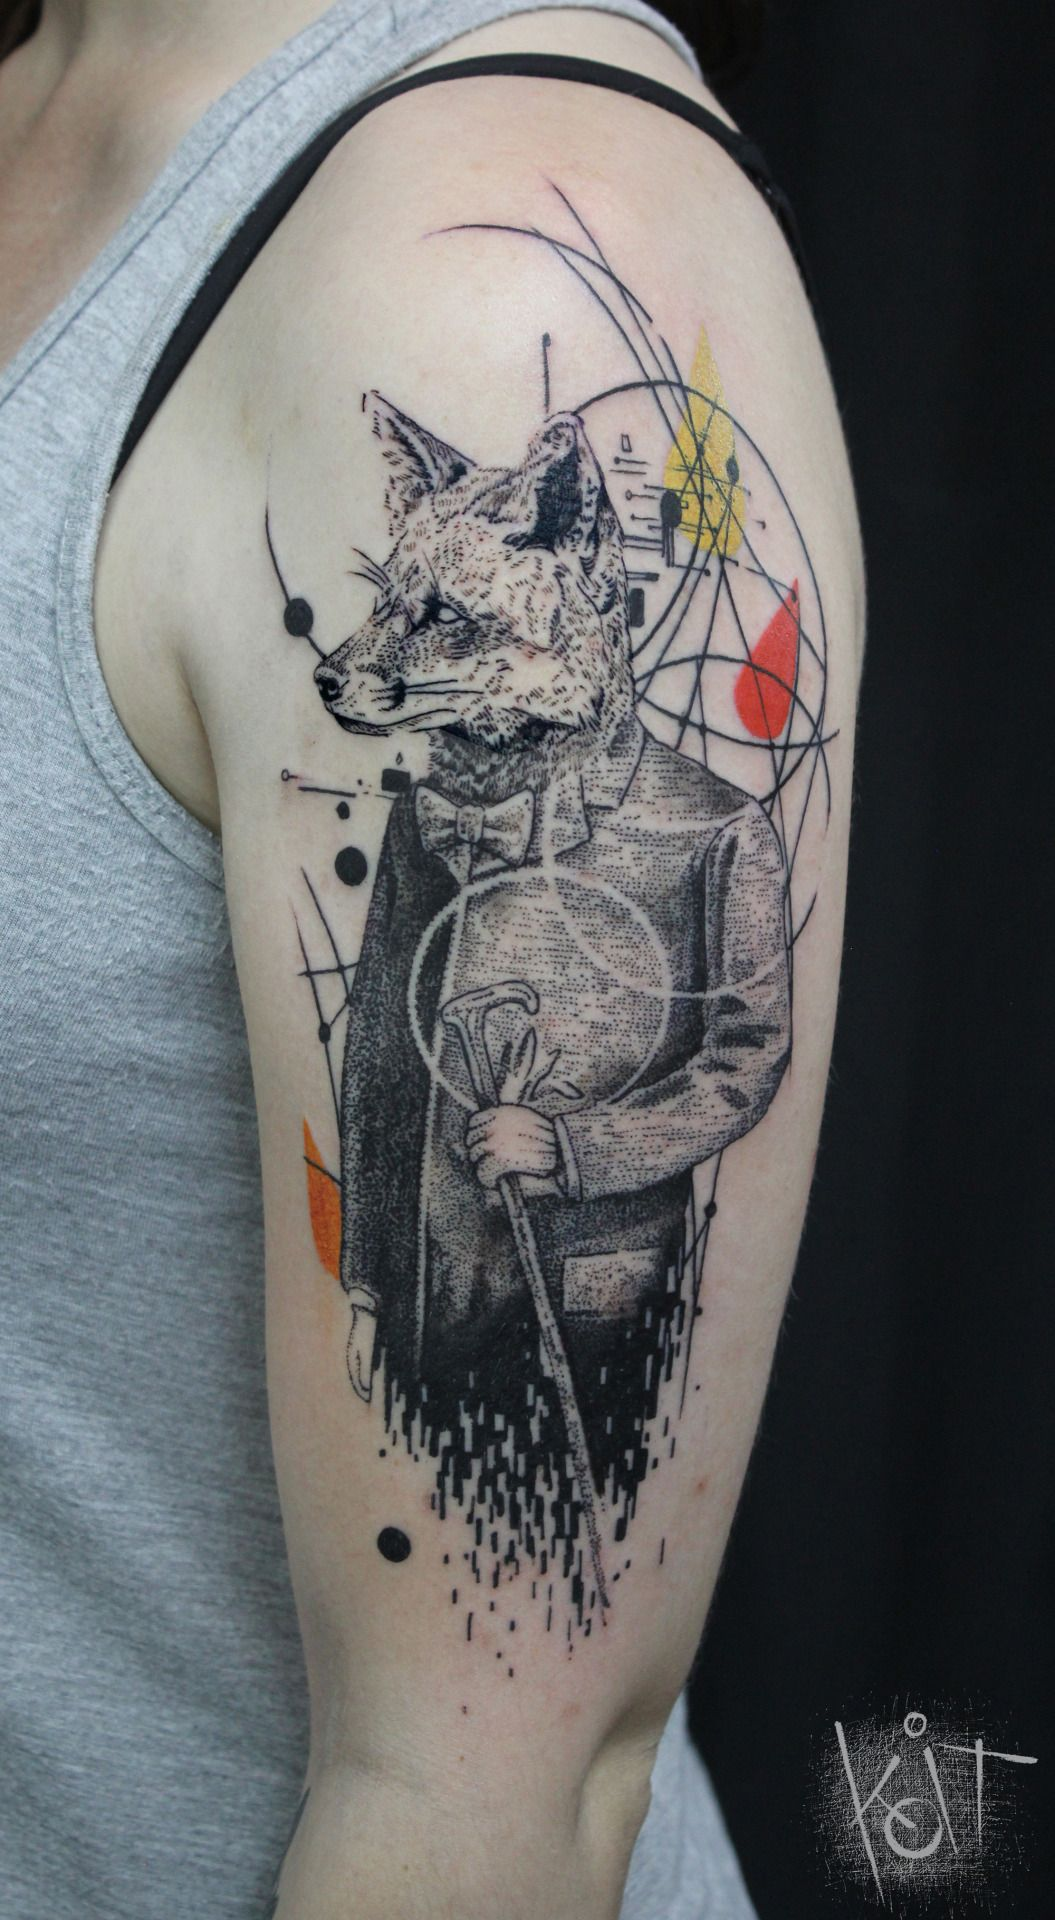 Arte Tattoo Studios Gainesville Ga Graphic Style Fox Arm Tattoo By Koit Based In Berlin Travelling